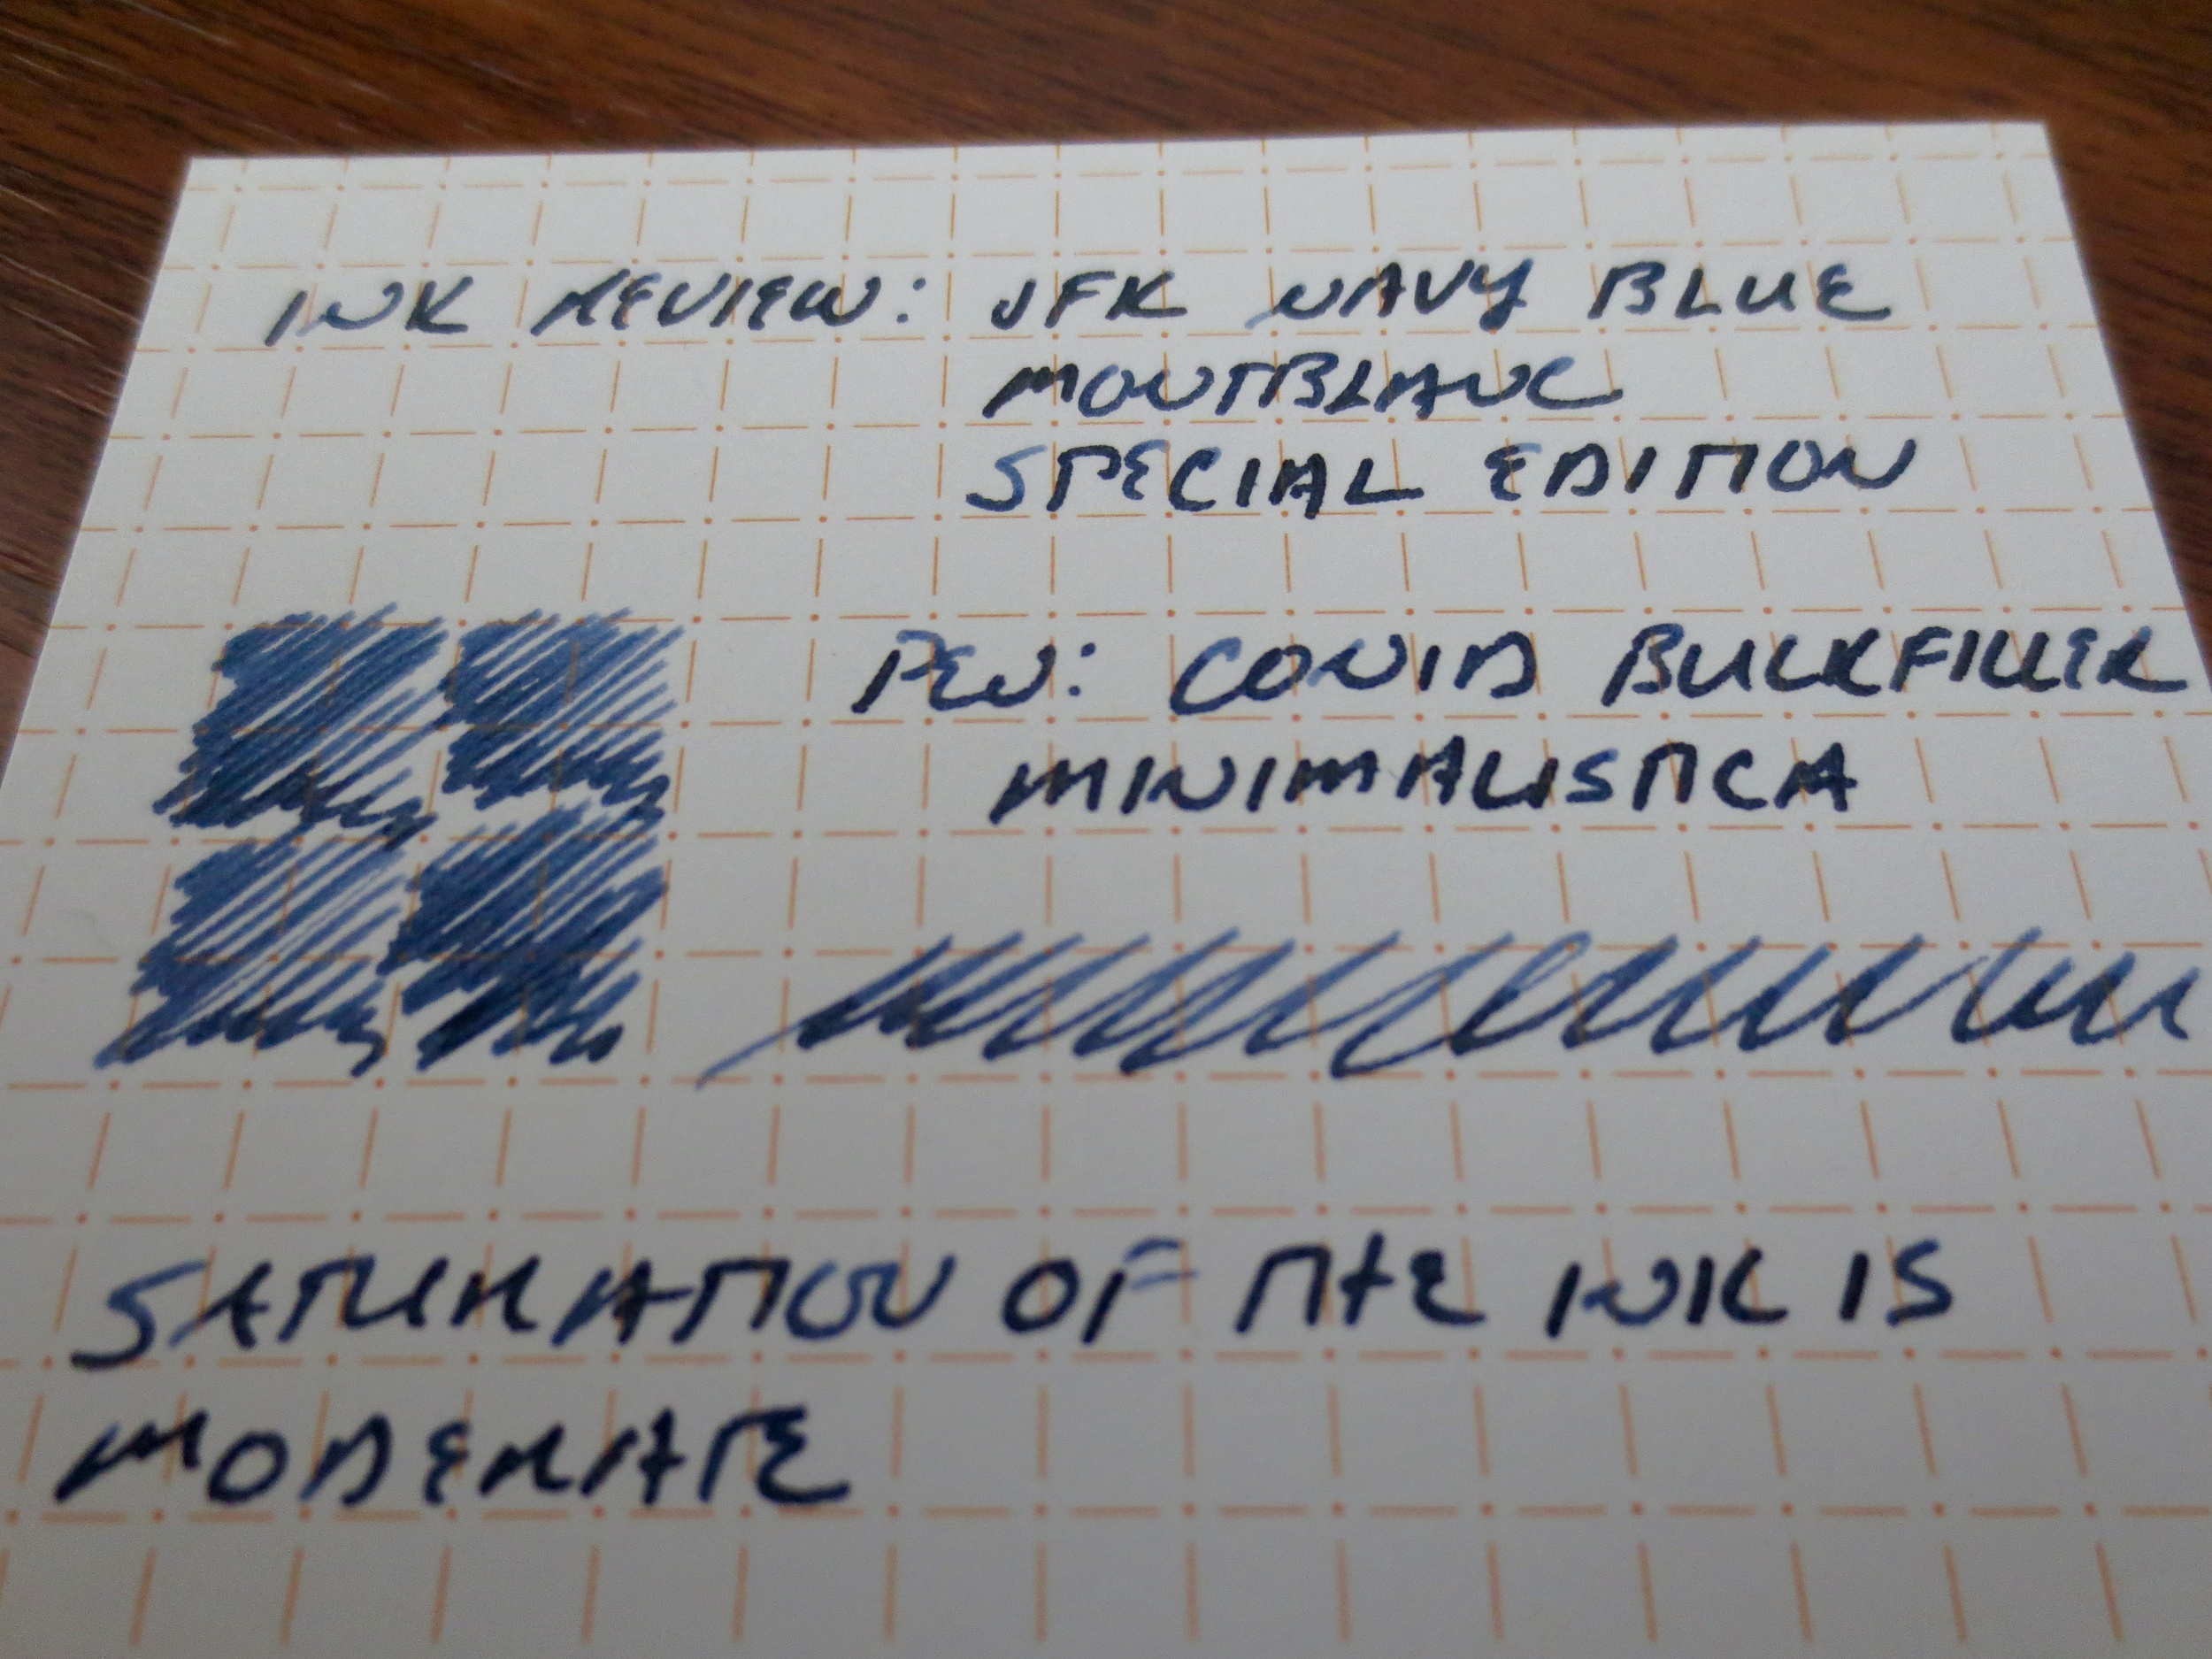 The writing sample here is done with a Conid Bulkfiller Minimalistica (fine nib) on Nock Co. Dot-Dash notecards.